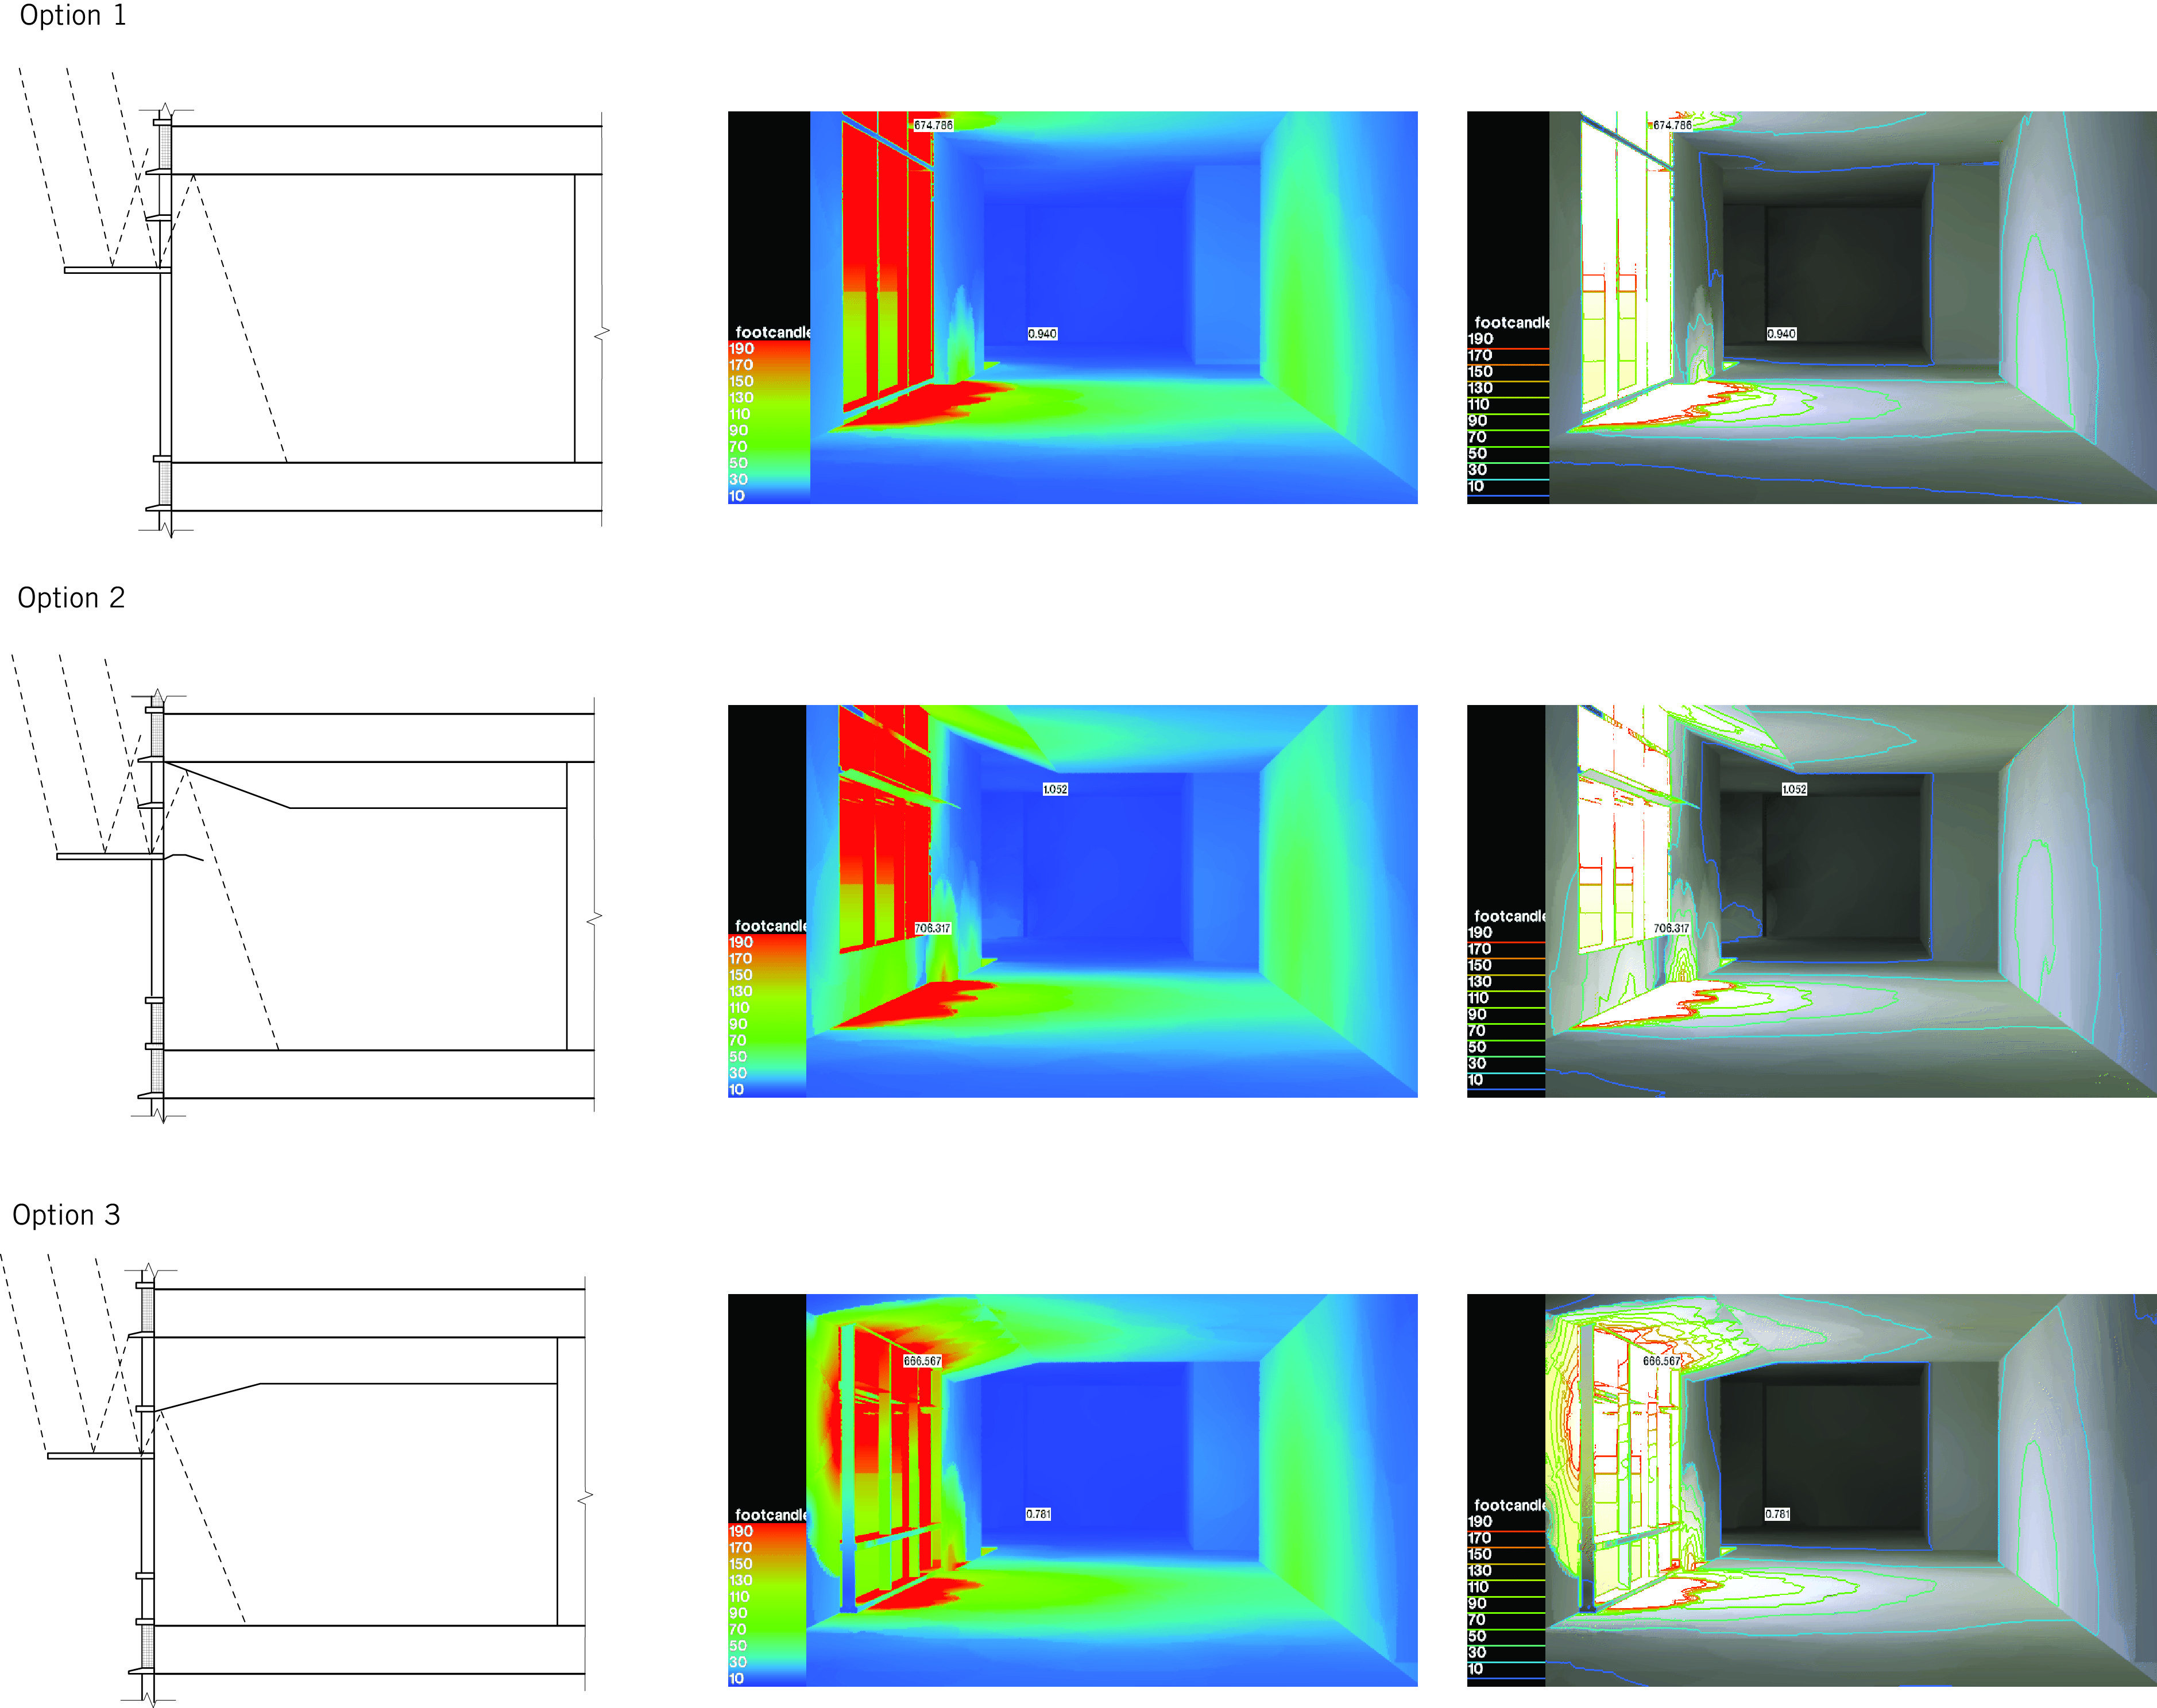 Daylight simulations for three different facade design options. The